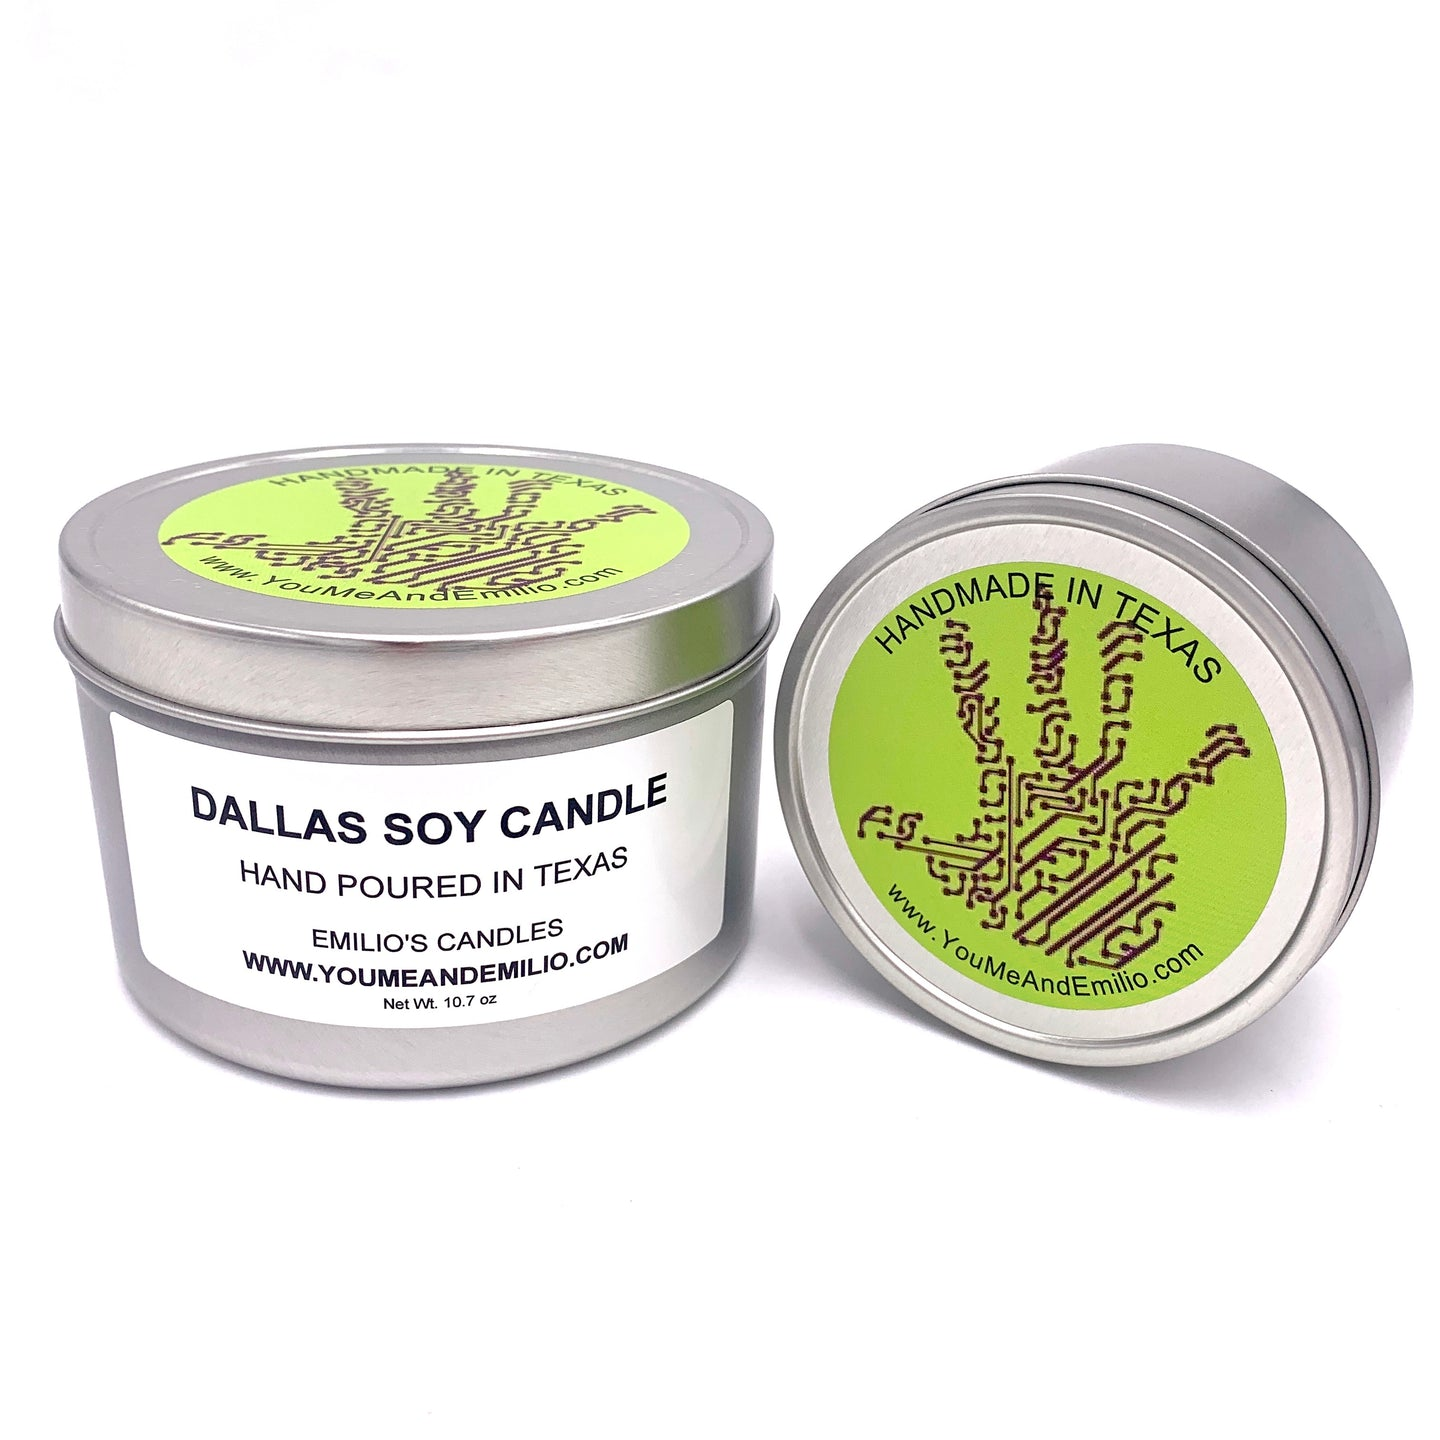 Dallas Soy Candle